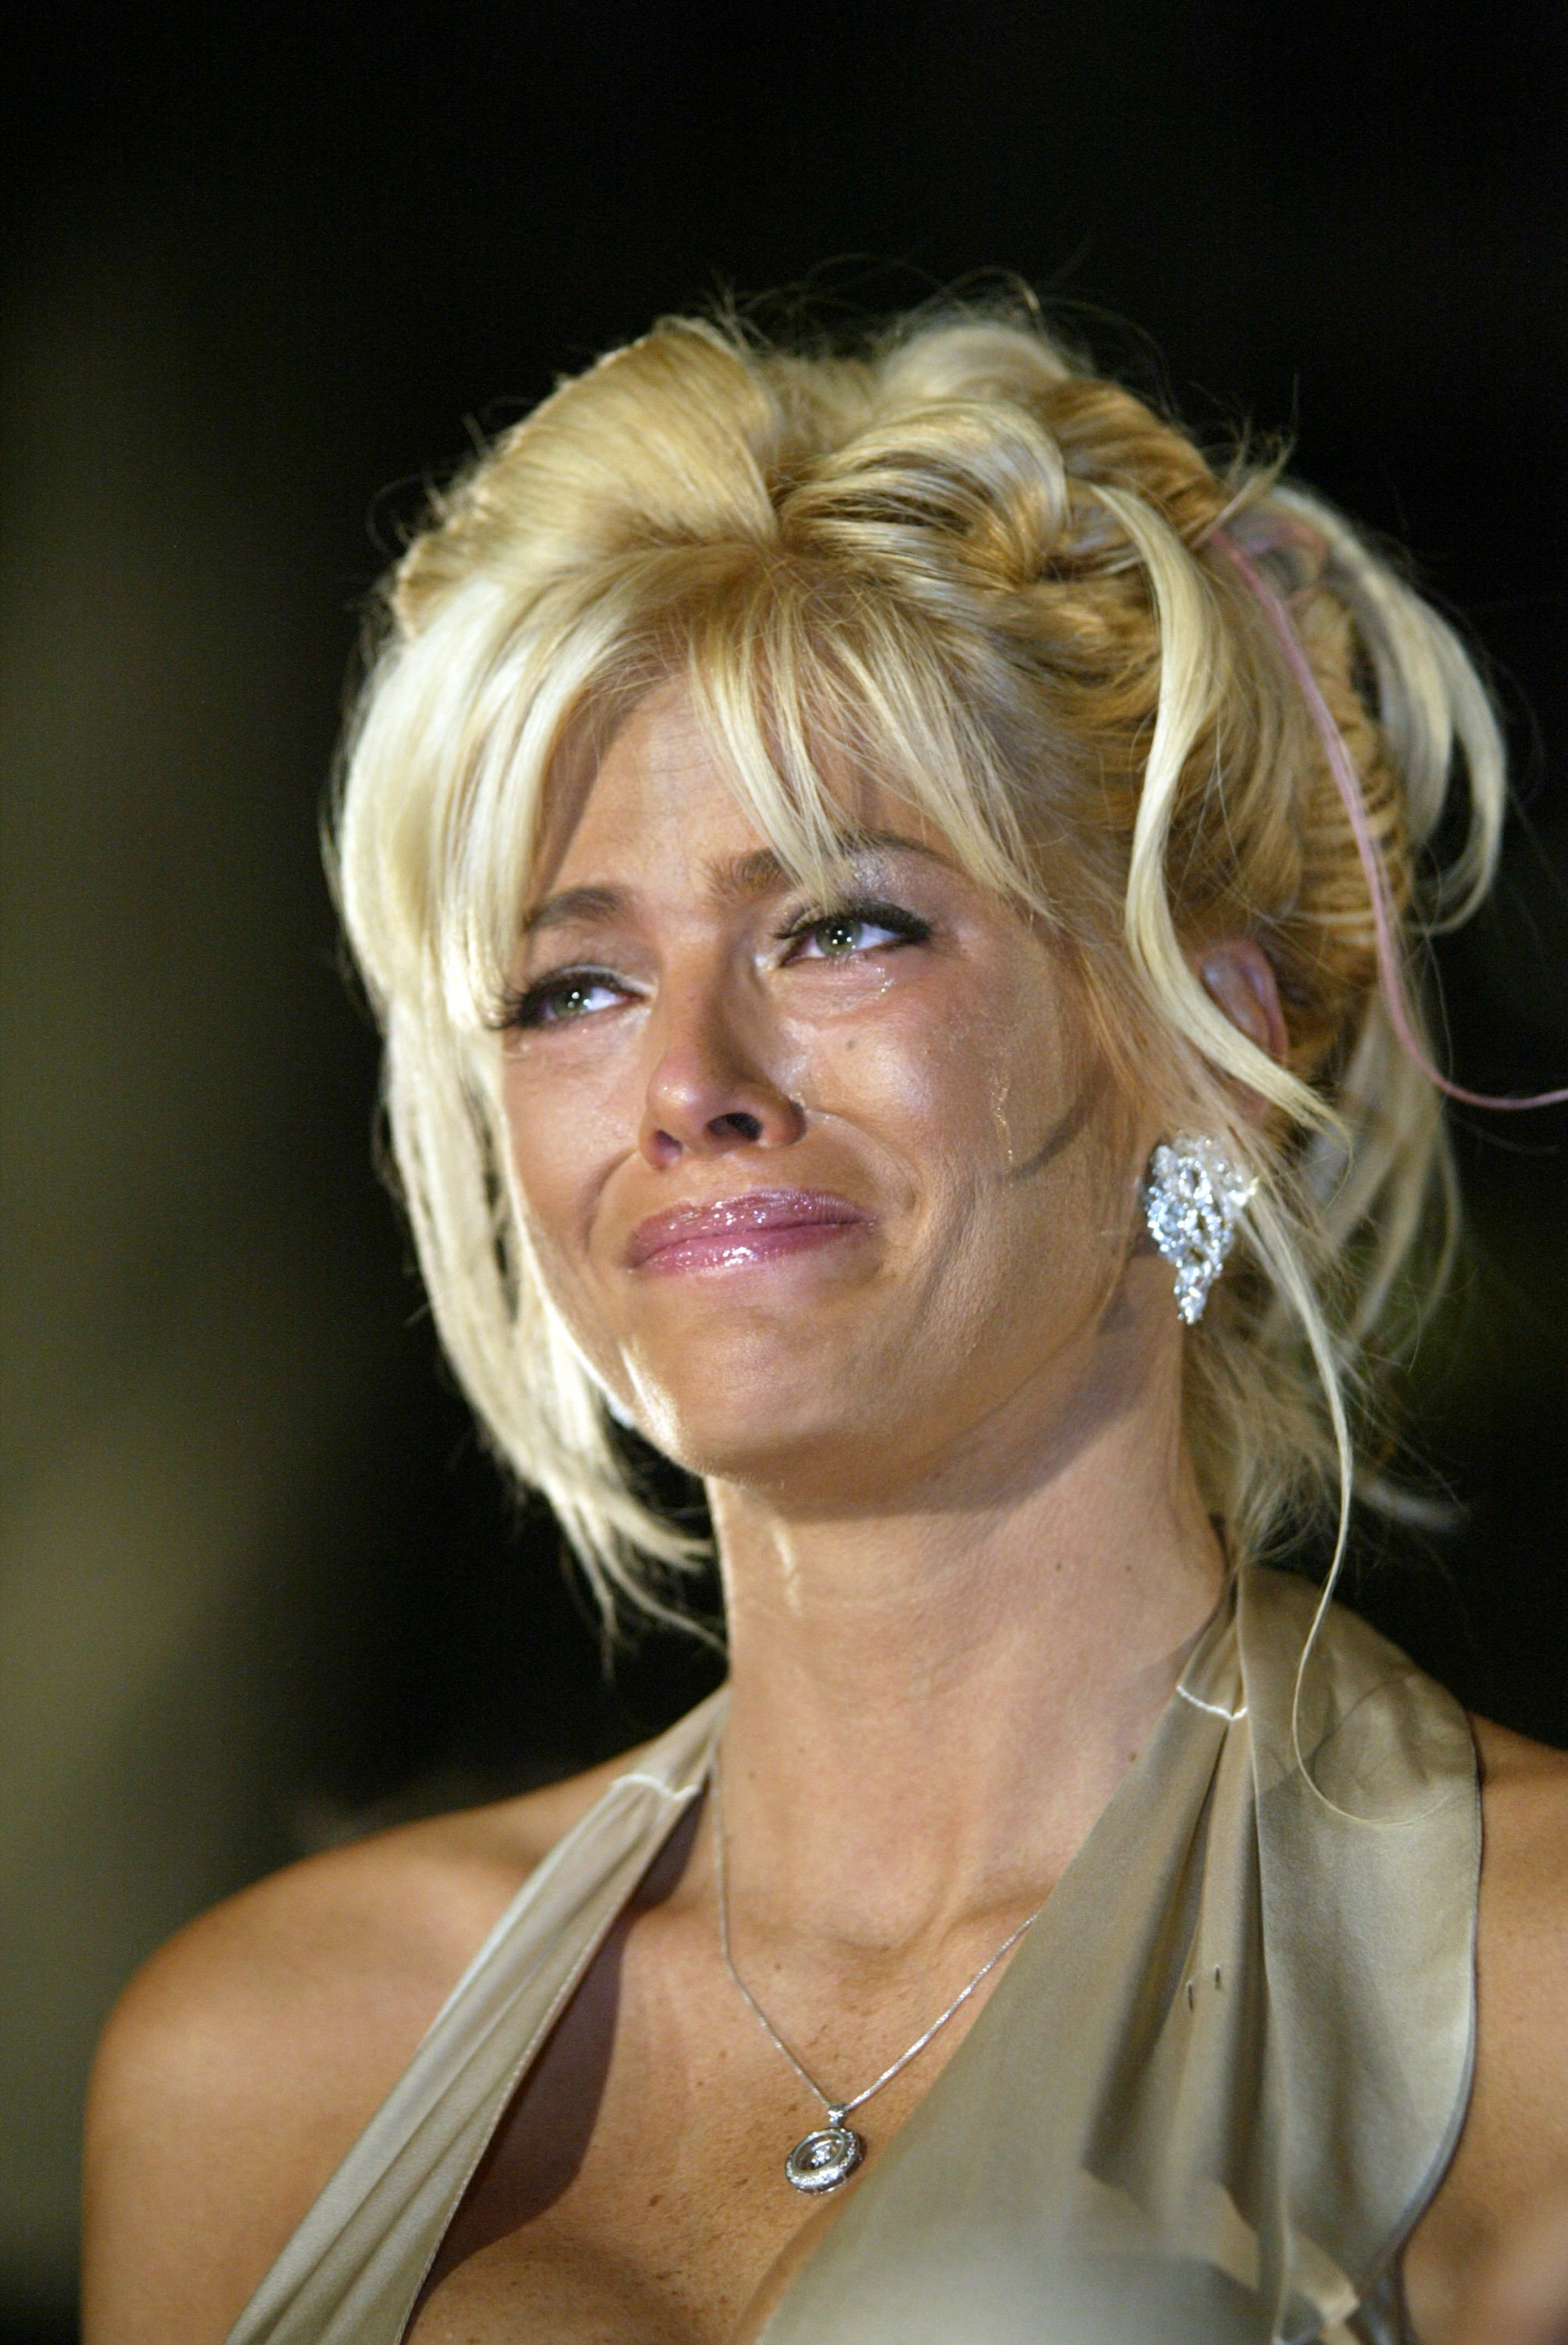 Former Playboy Playmate Anna Nicole Smith | Getty Images